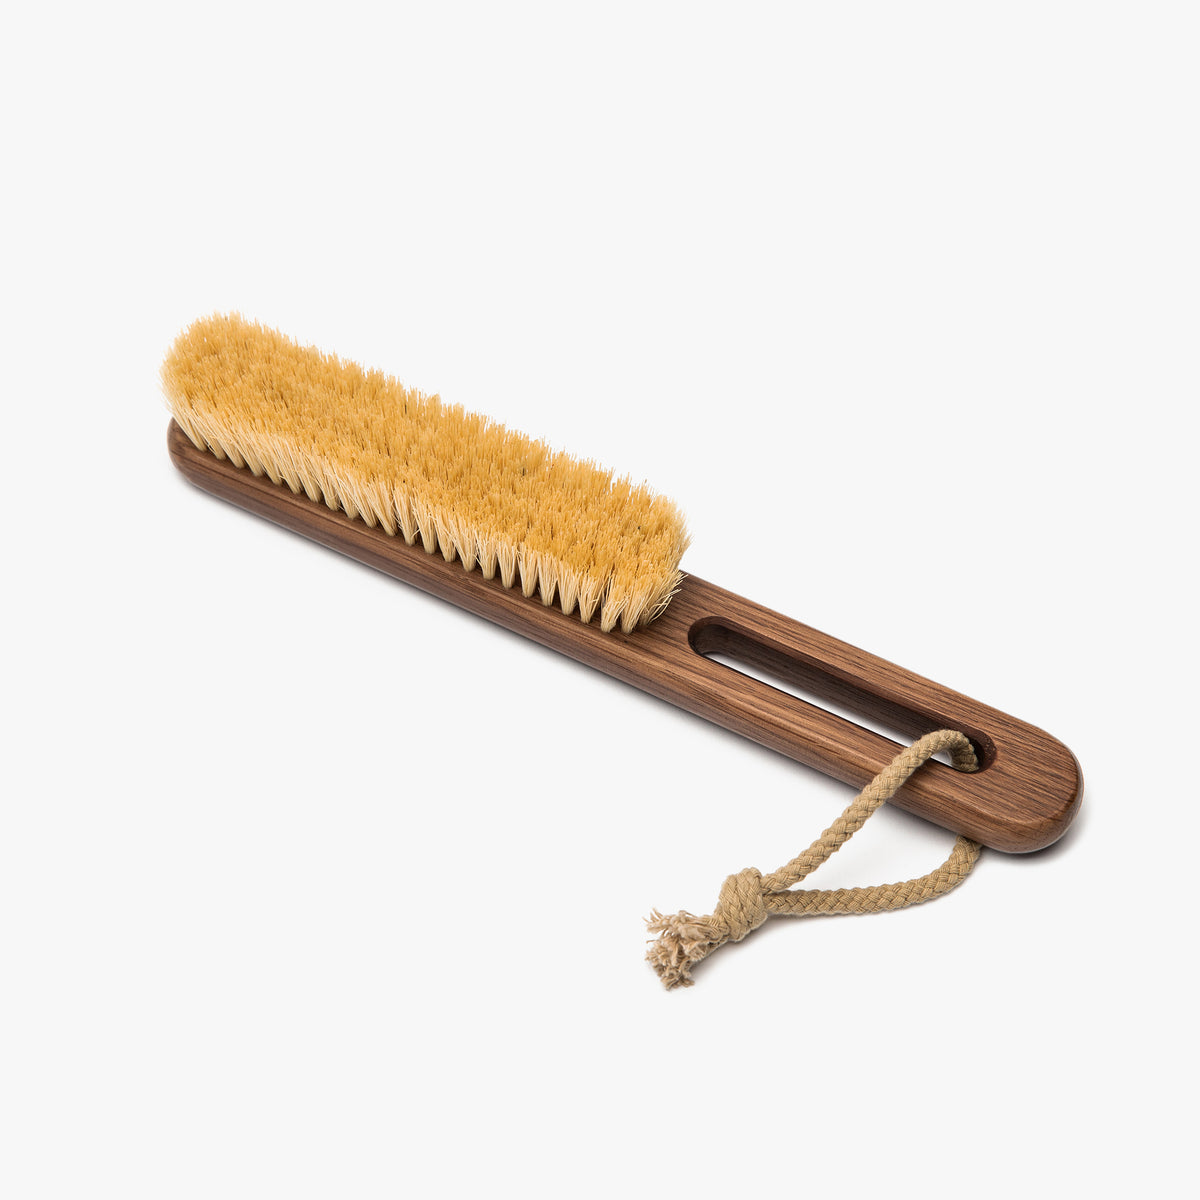 Clothing Brush (Vegan)